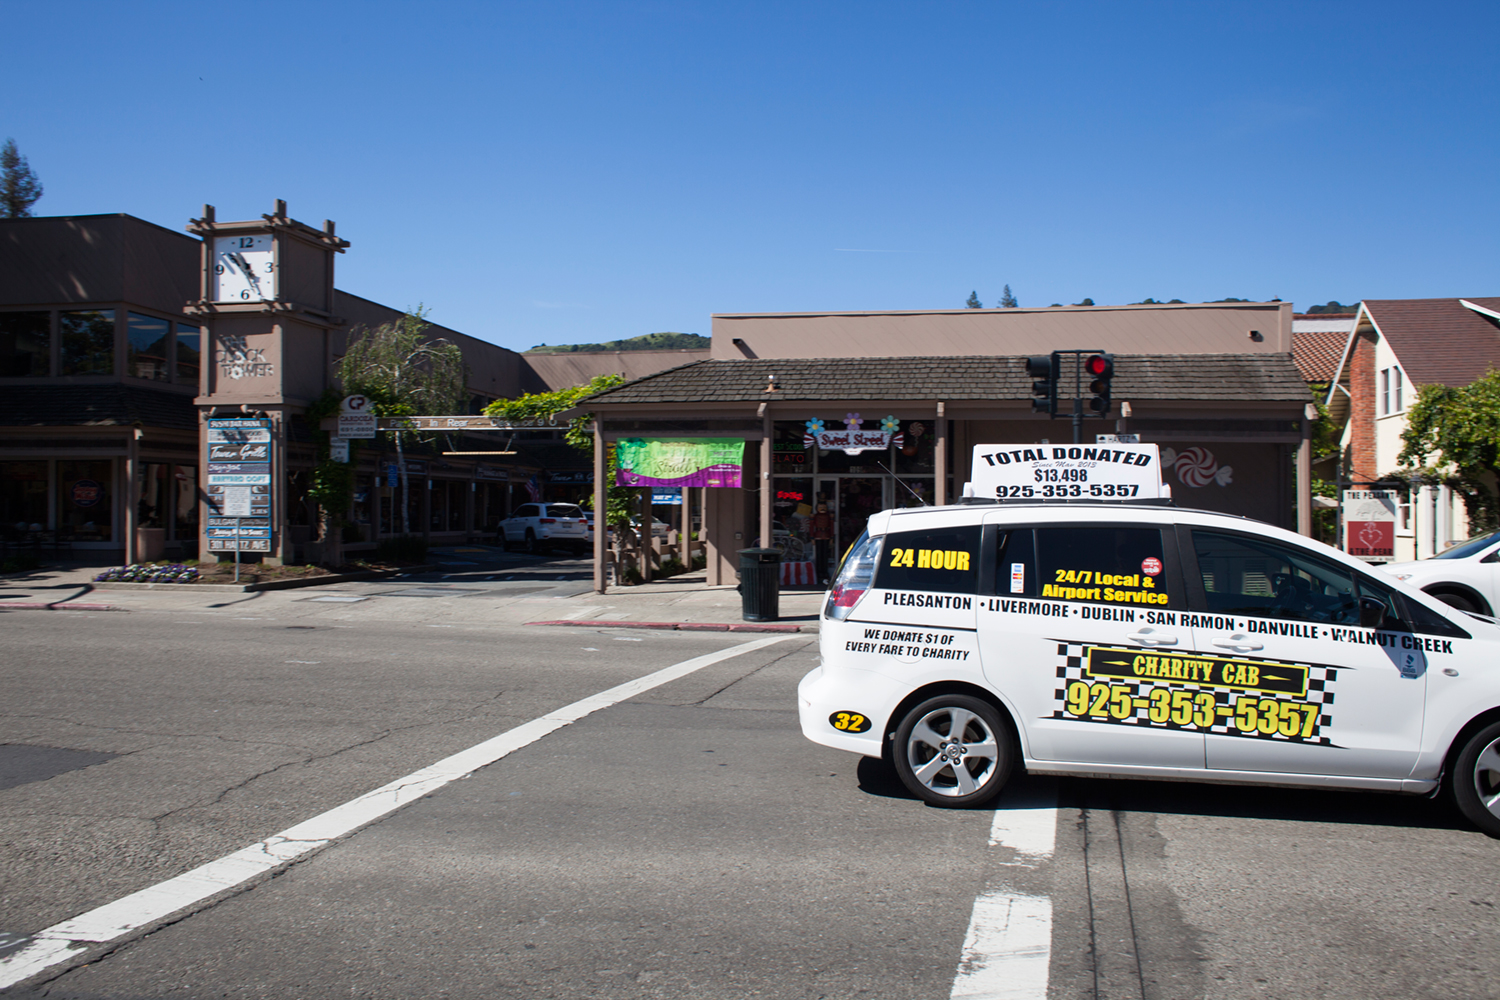 Charity Cab service in front of The Clock Tower, in Danville, CA.